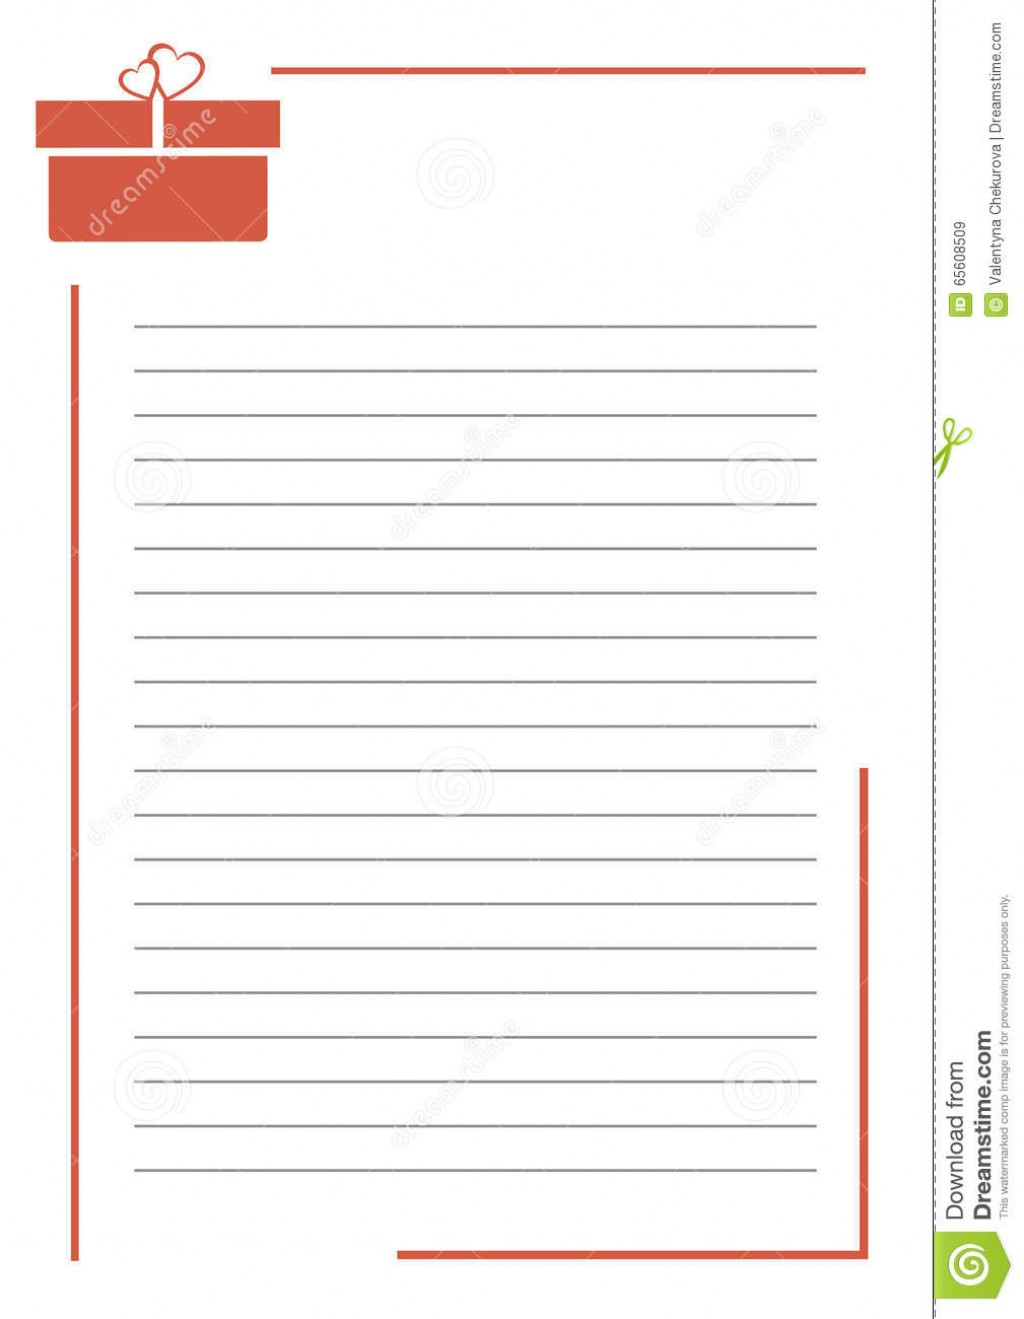 004 Example Of Notecards For Research Paper Vector Blank Letter Greeting Card White Form Red Gift Box Lines Border Format Size Fascinating How To Write A Mla Writing Large